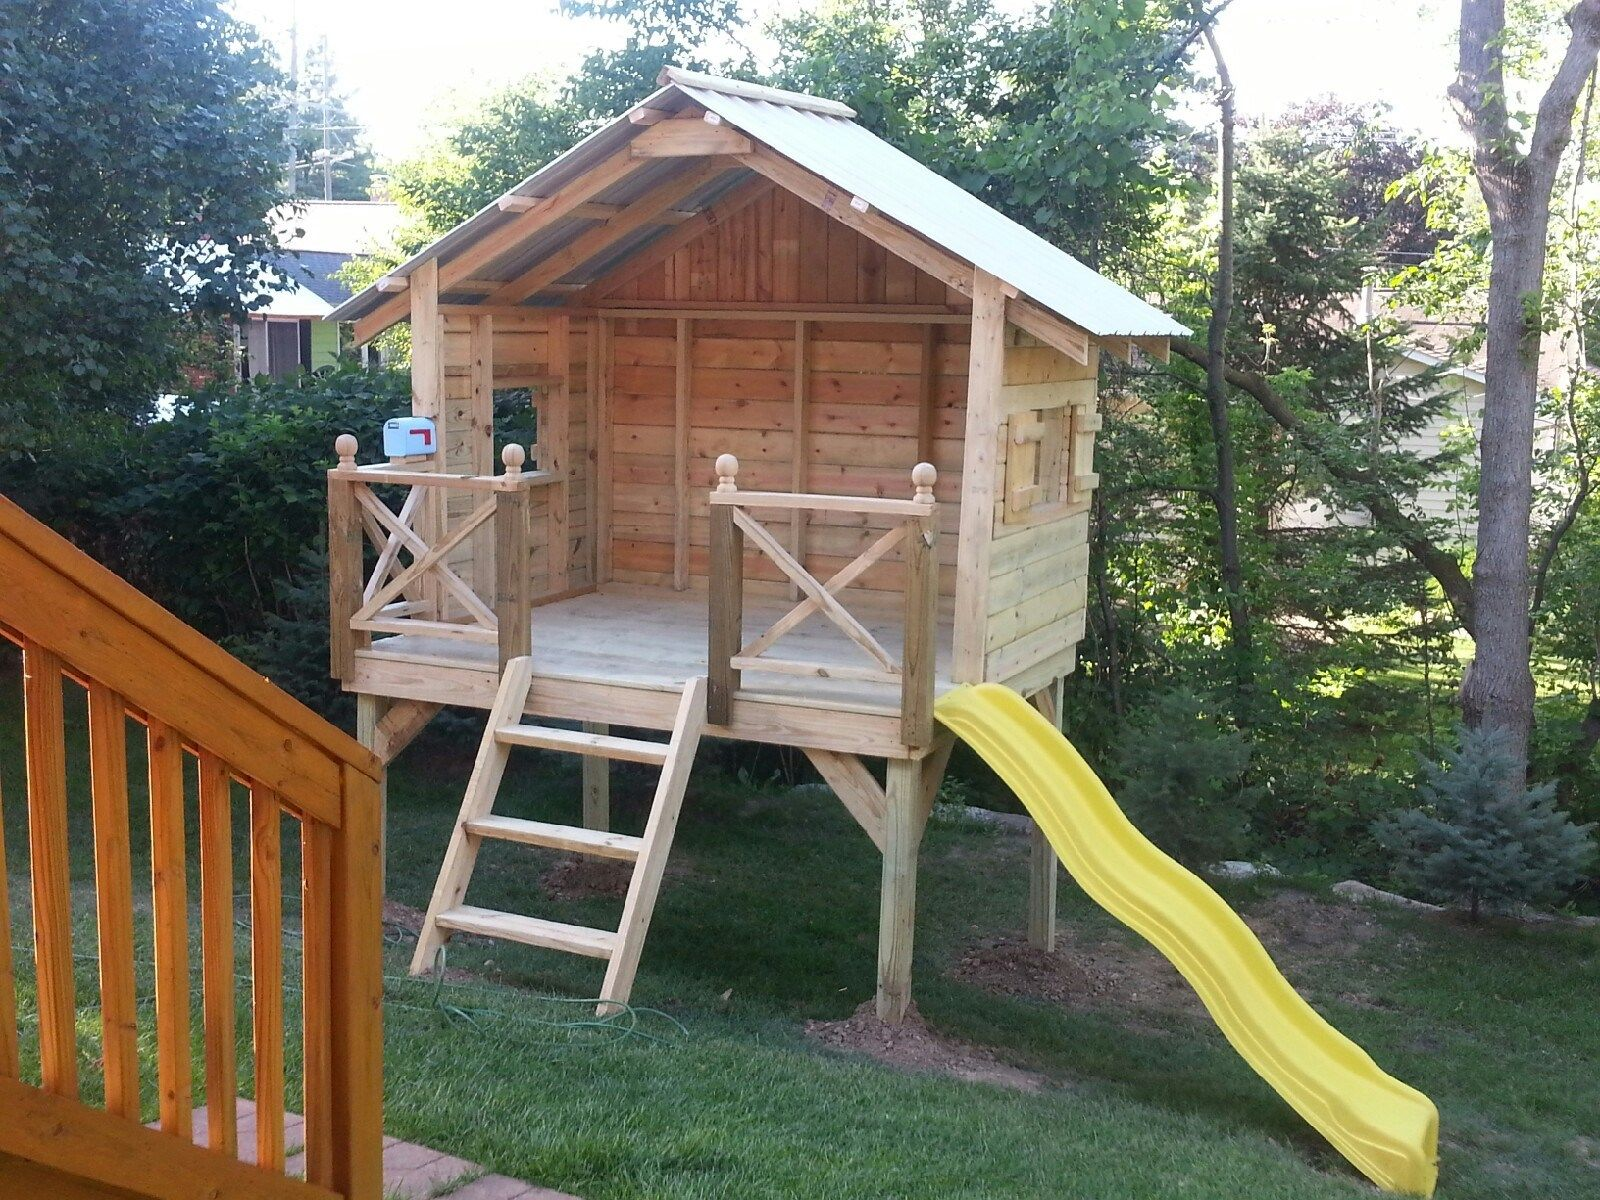 Children's Playhouse - Picture 6132